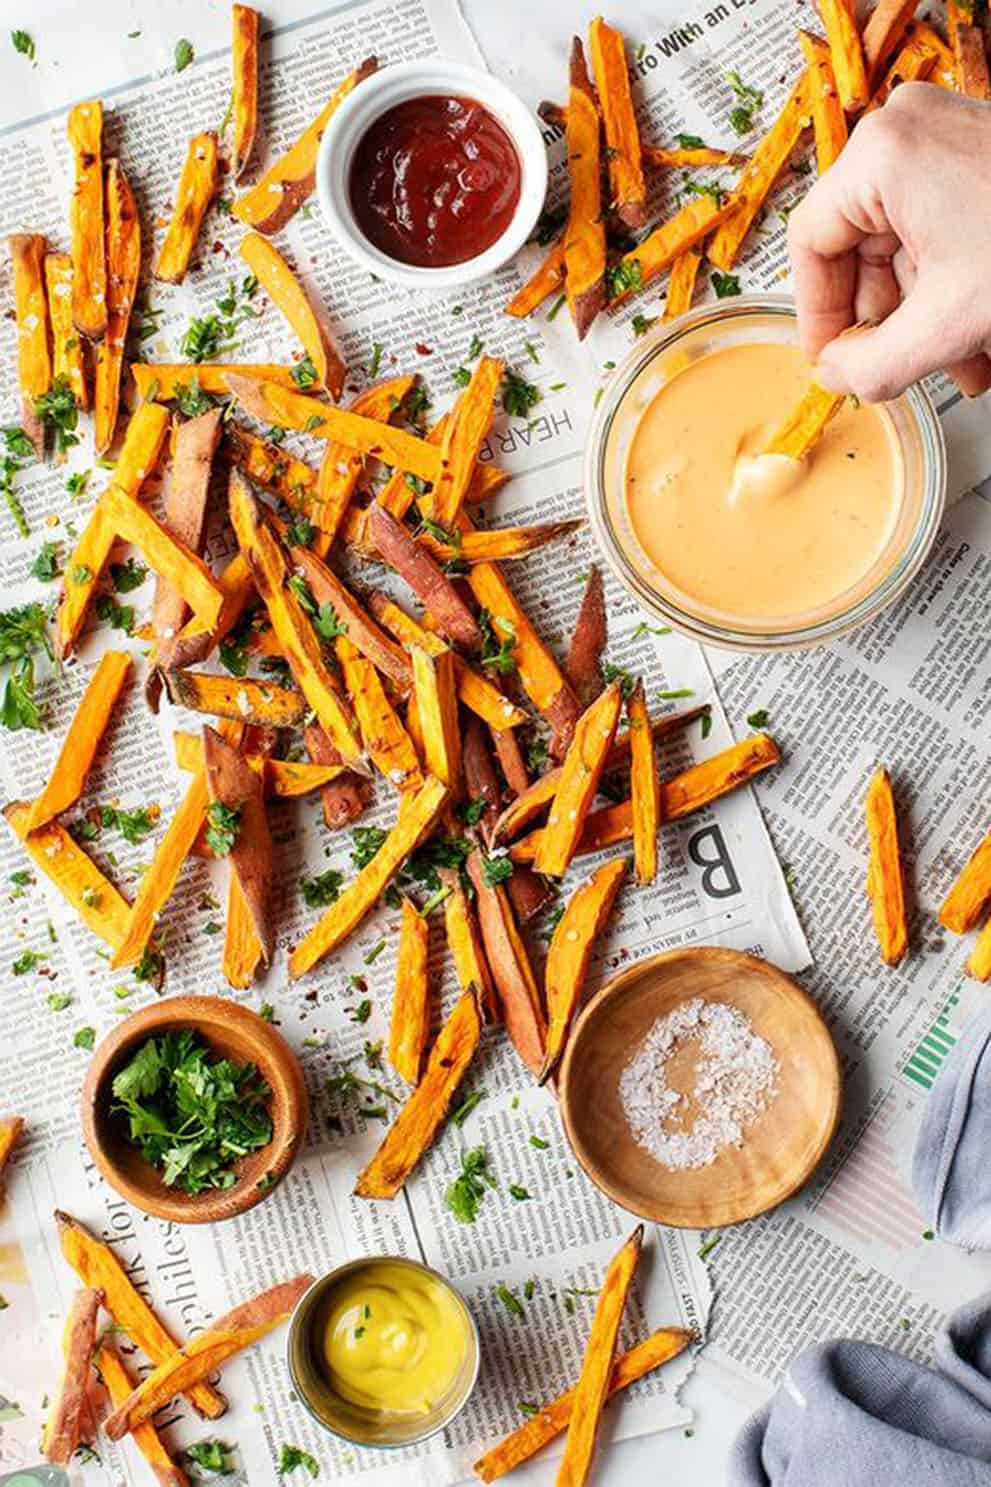 CRISPY BAKED SWEET POTATO FRIES by Love and Lemons: from a list of amazing vegan appetizers.